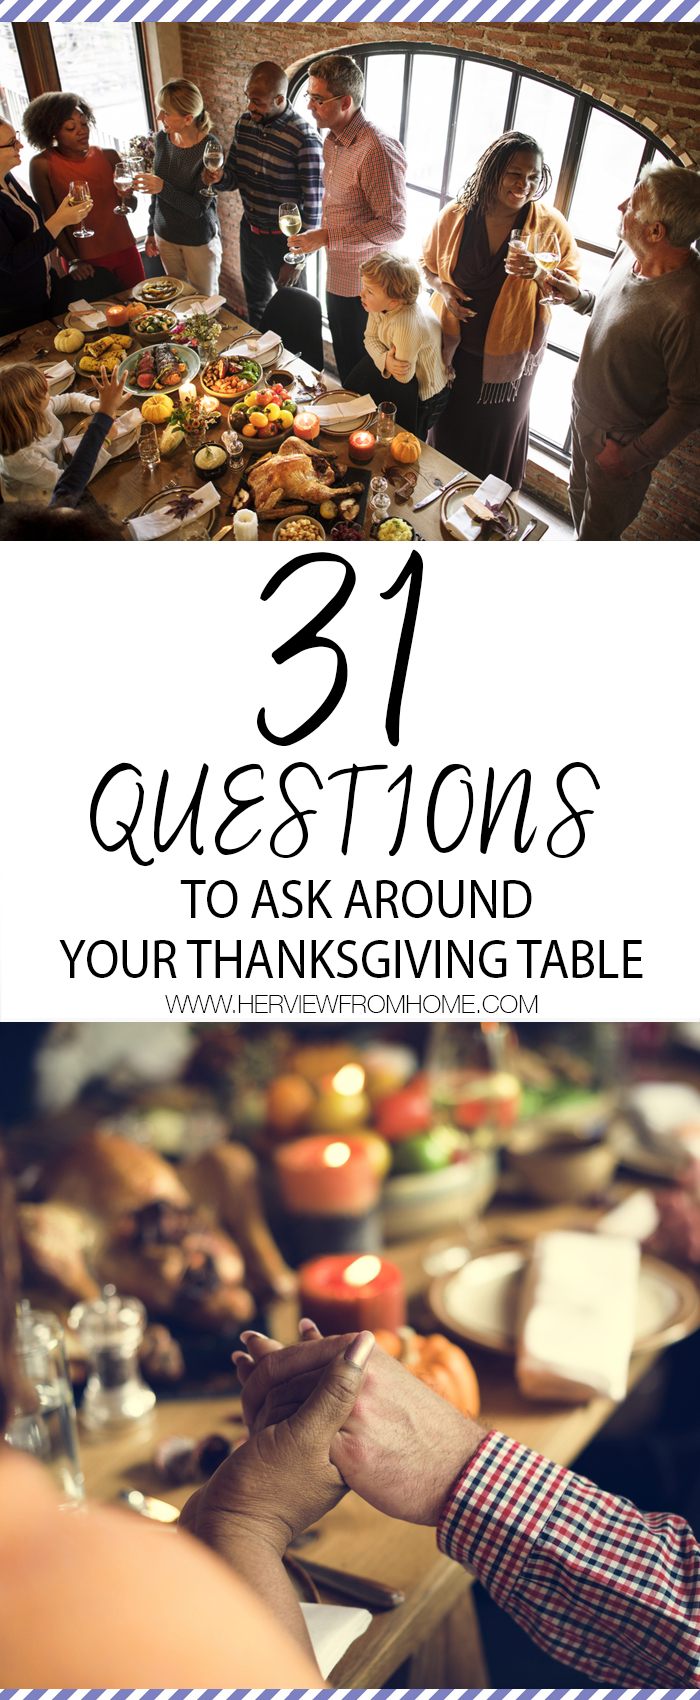 And as the turkey gets carved and the conversations get going, I hope that you will join us in discussing a few of these questions that will help our words reflect gratitude---not just on Thanksgiving Day but every day www.herviewfromhome.com